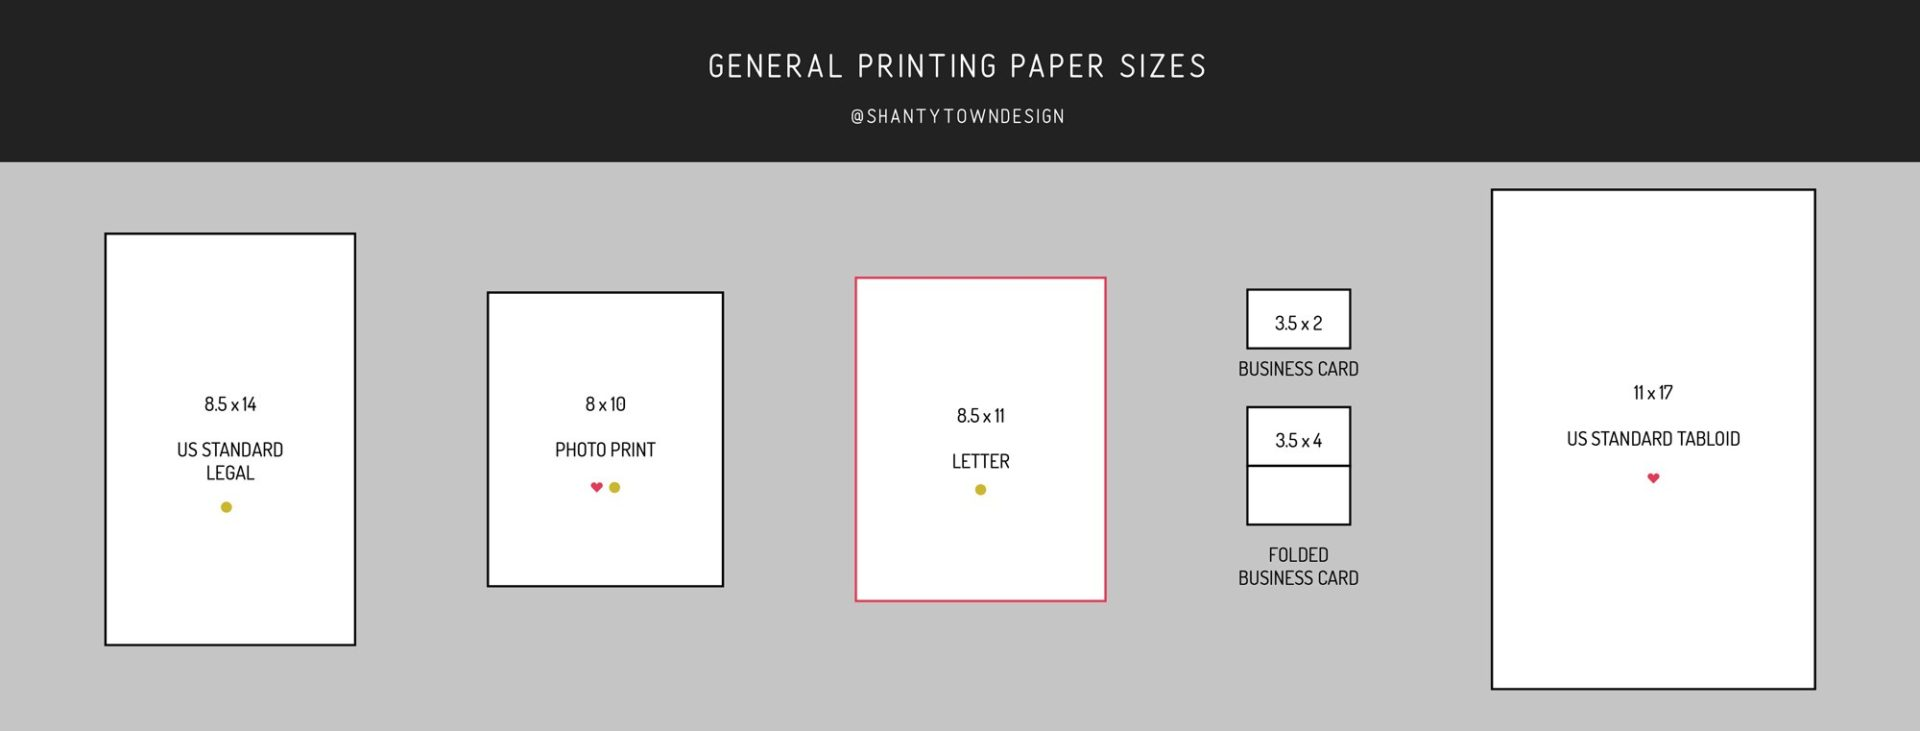 general paper printing size guide, US standard paper sizes